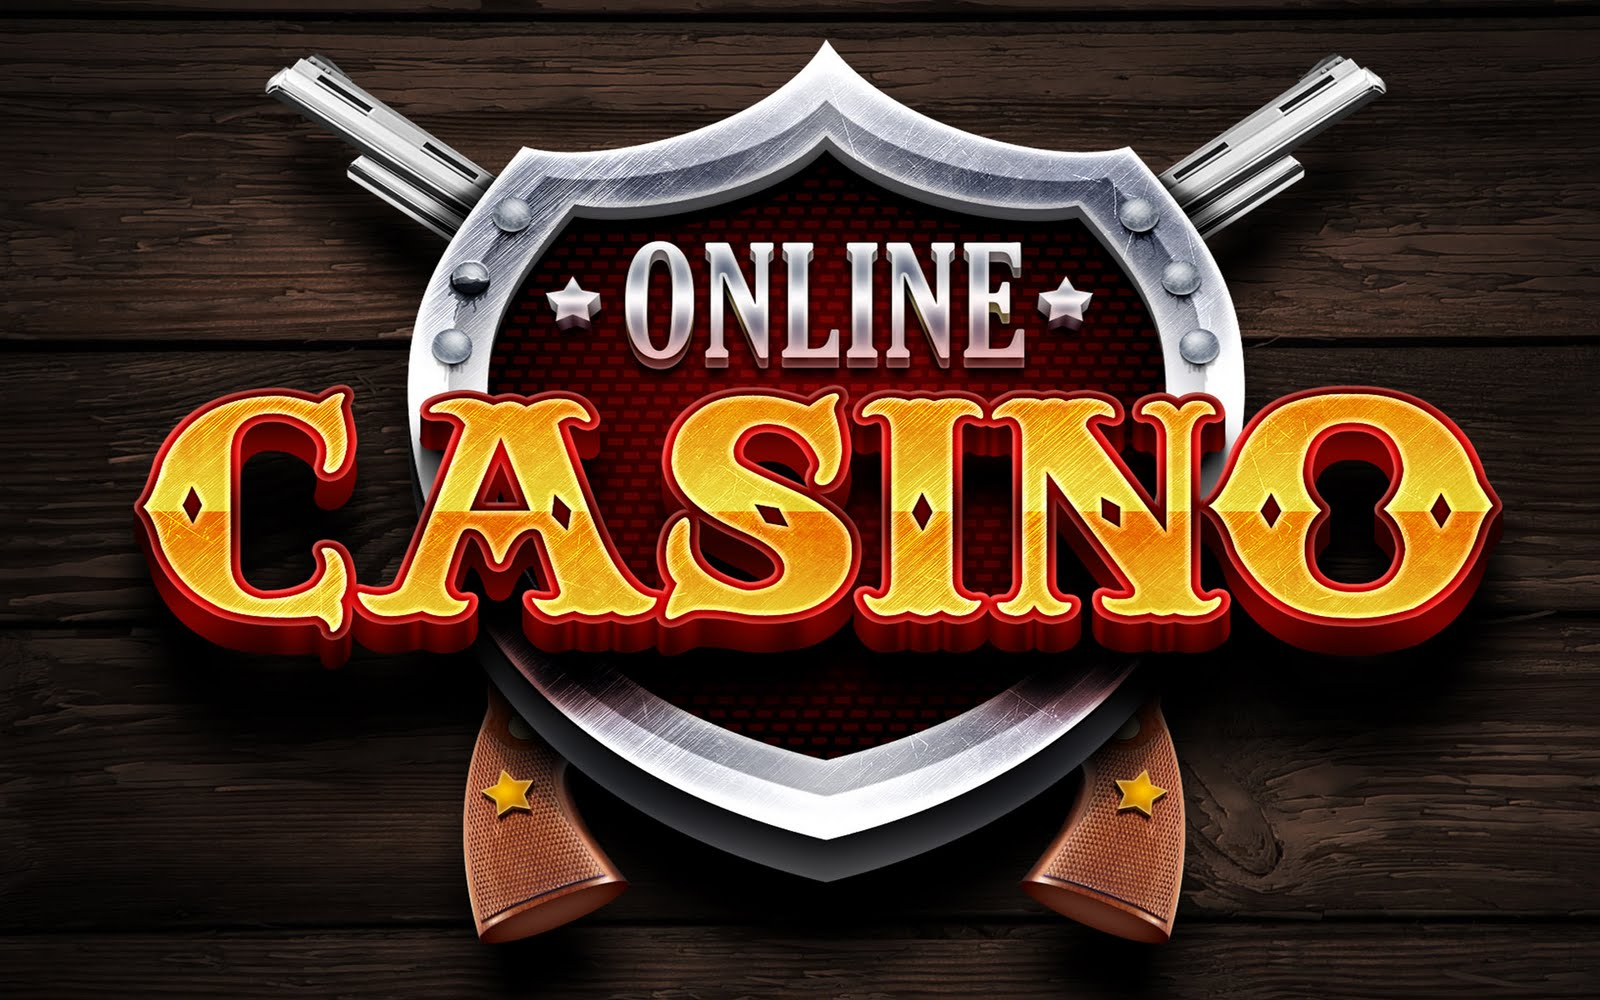 onlin casino gaming